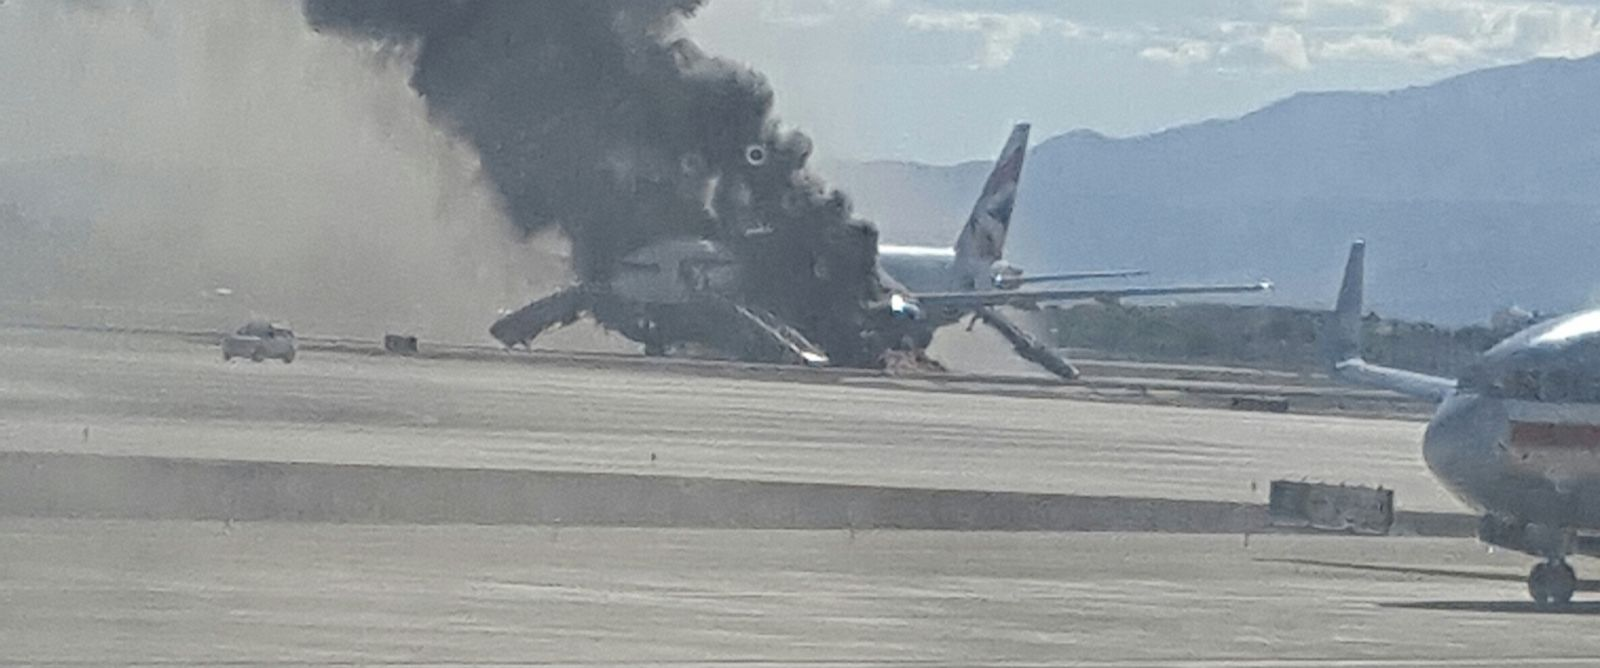 PHOTO: In this photo taken from the view of a plane window, smoke billows out from a plane that caught fire at McCarren International Airport, Tuesday, Sept. 8, 2015, in Las Vegas.